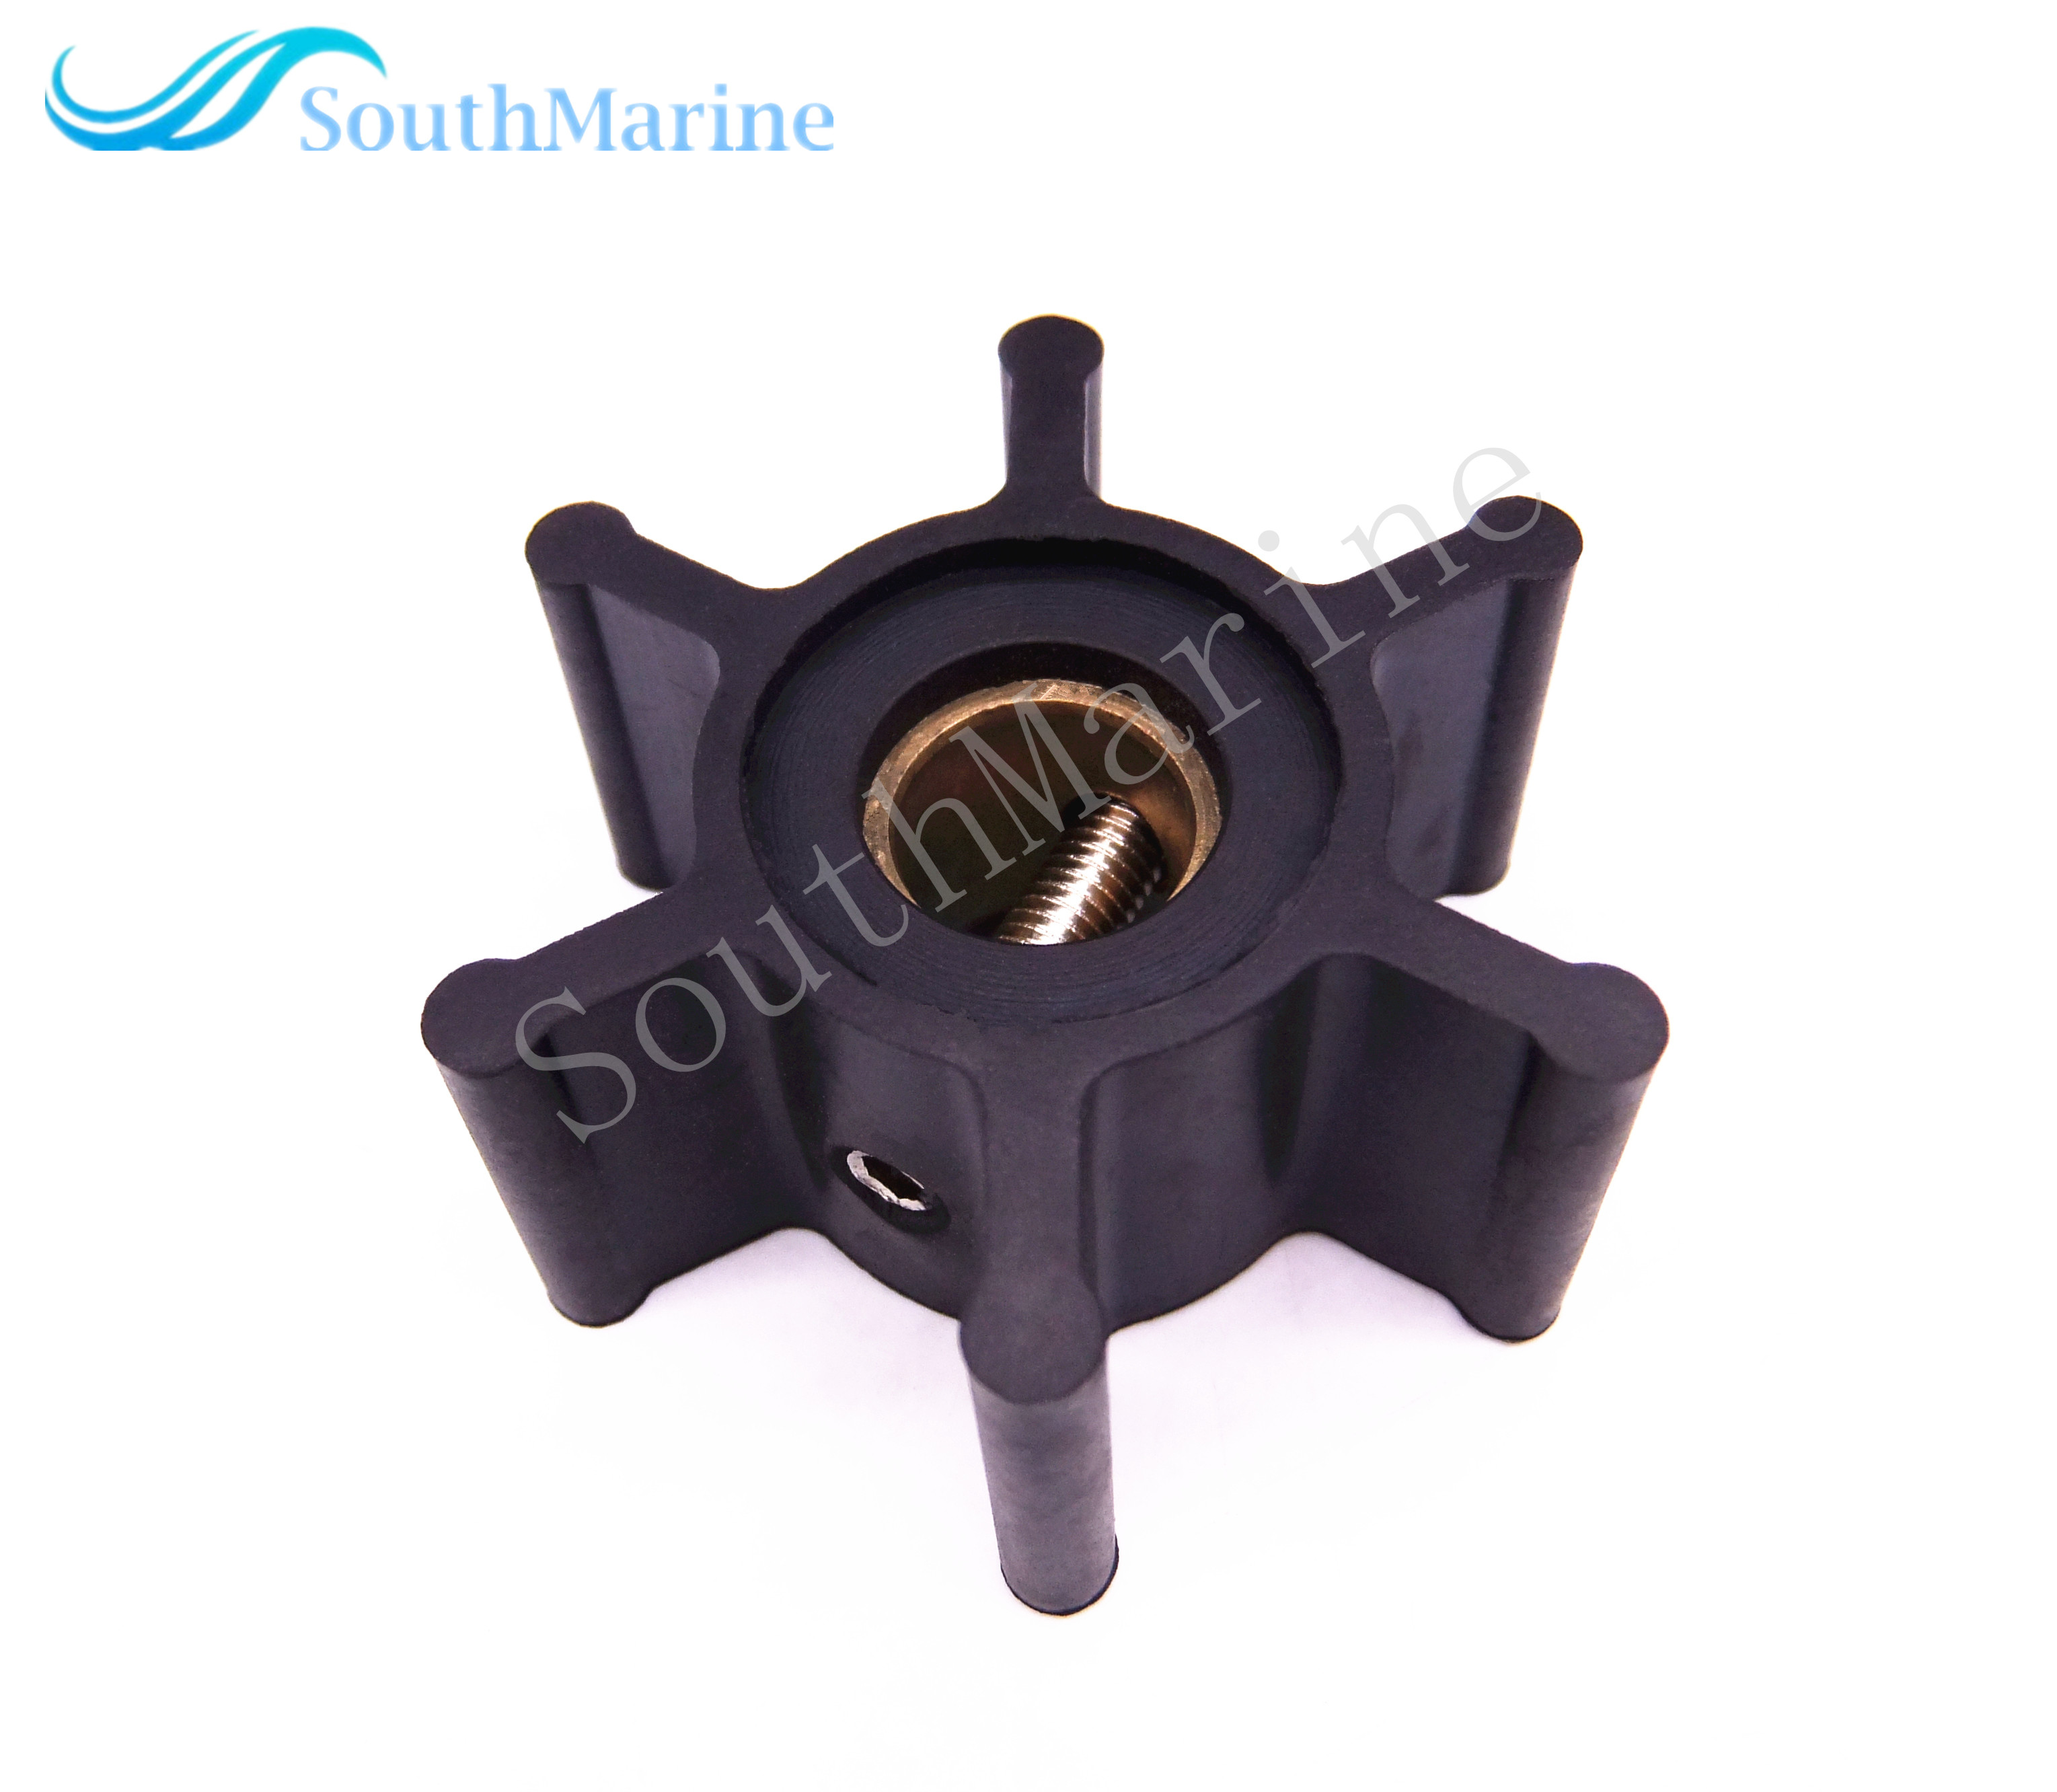 Water Pump Impeller 09-810B 18653-0001 653-0001 128990-42200 9-45713  For Jabsco / Johnson / YANMAR Engine Pump Free Shipping